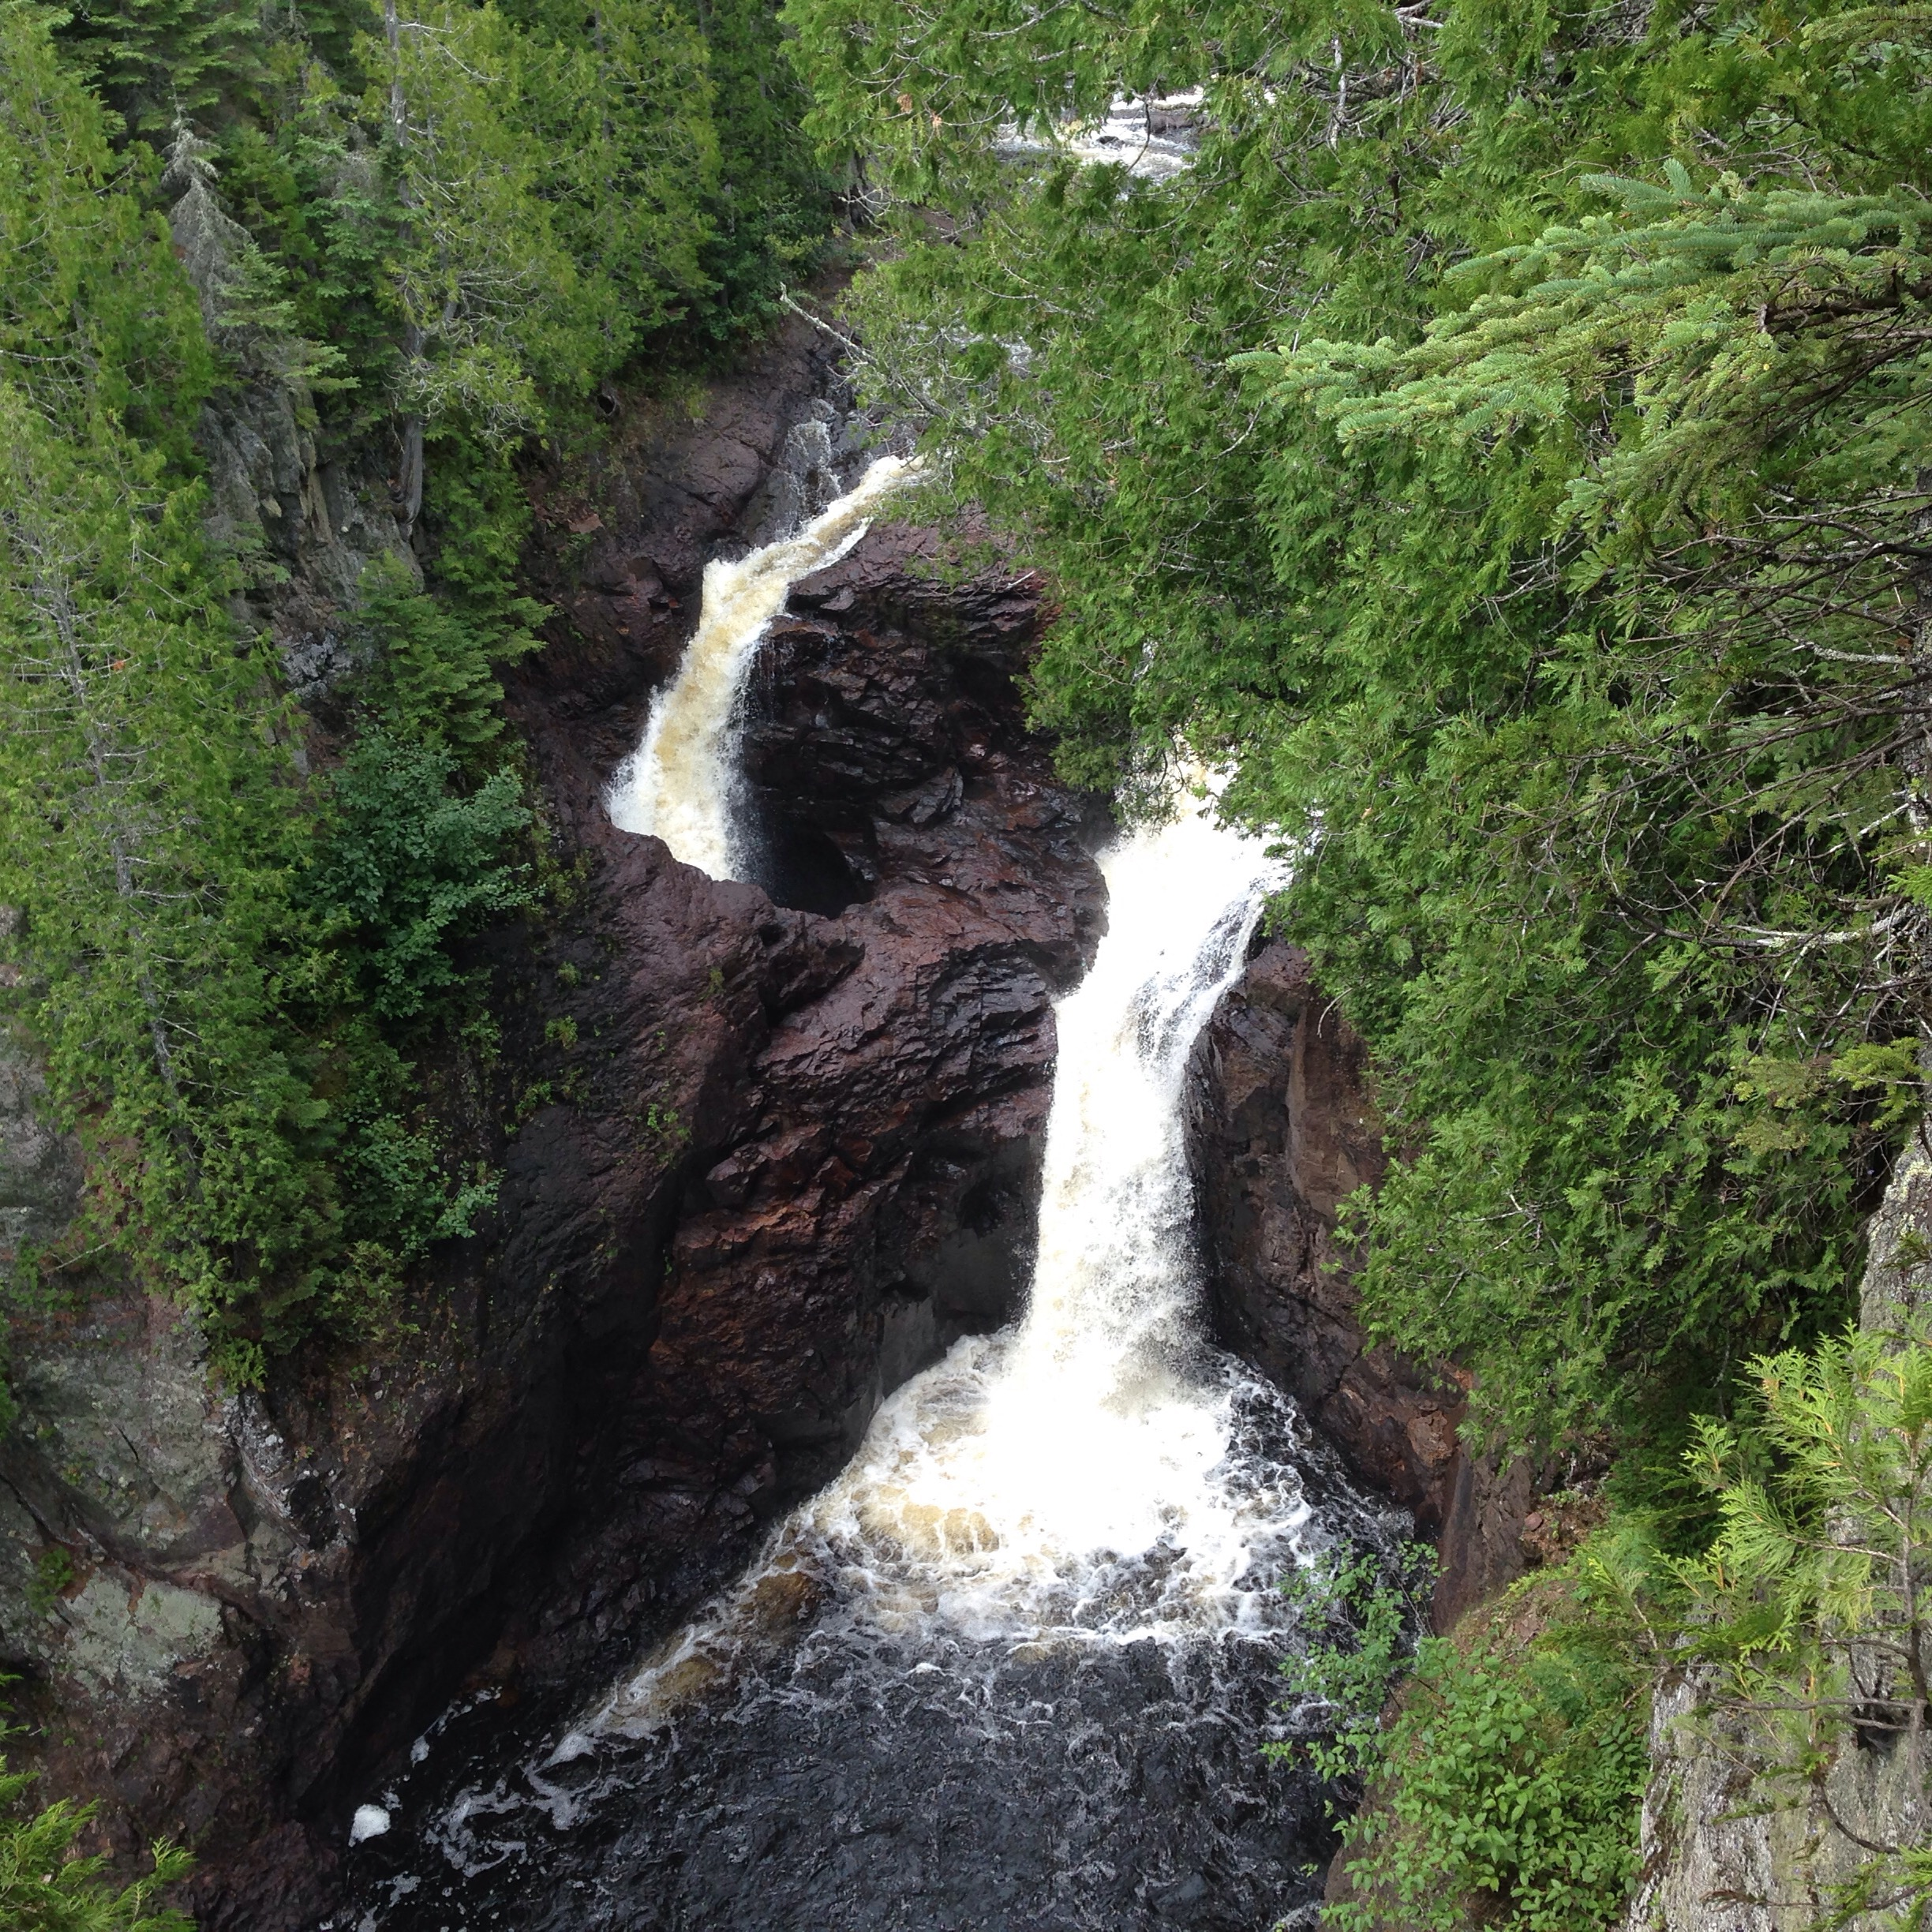 Devil's Kettle waterfall on the Brule River in Judge C.R. Magney State Park. North Shore. Minnesota.